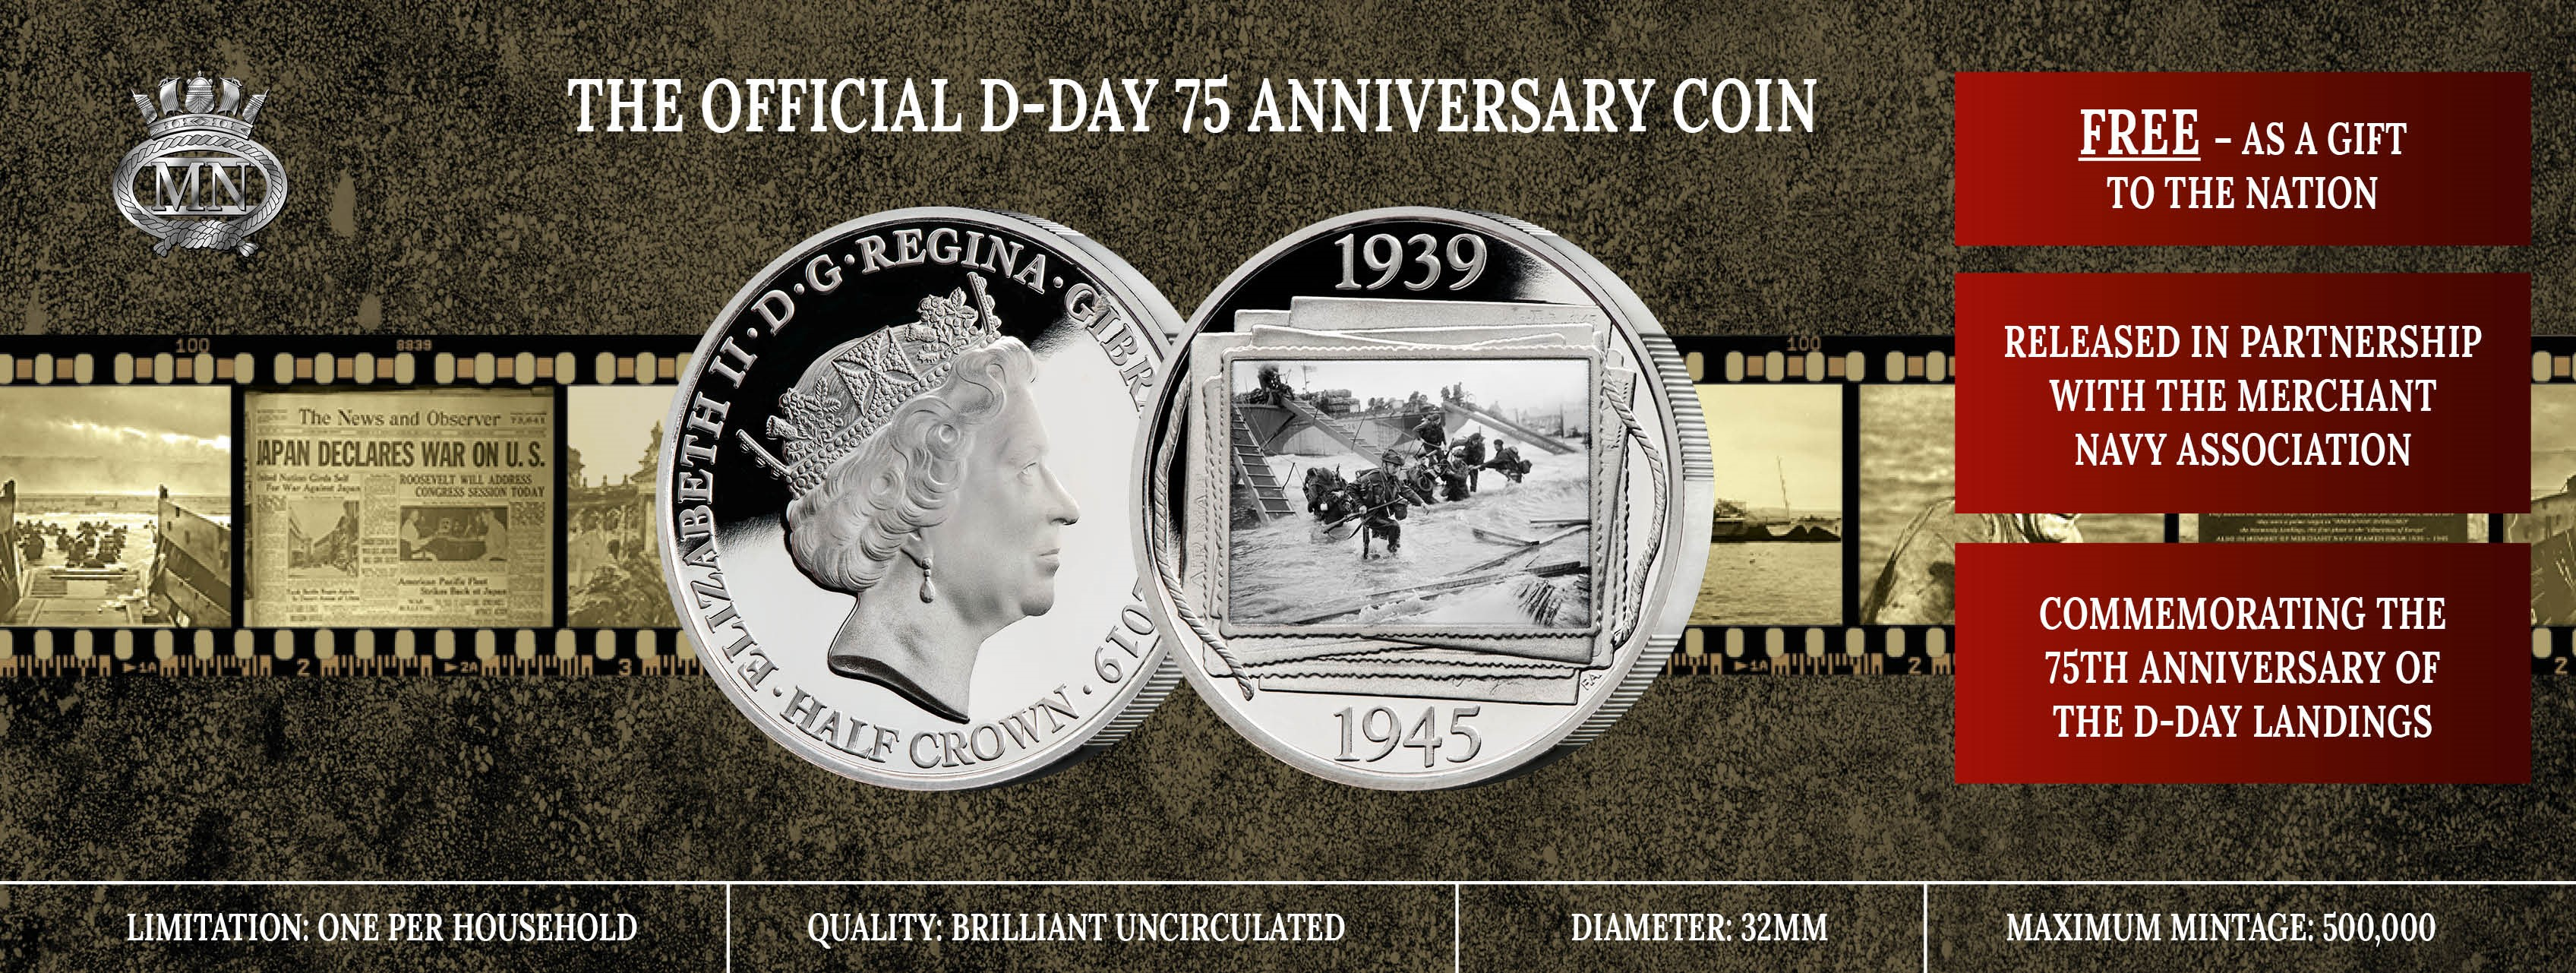 FREE Official Merchant Navy Association D-Day 75th Anniversary Coin